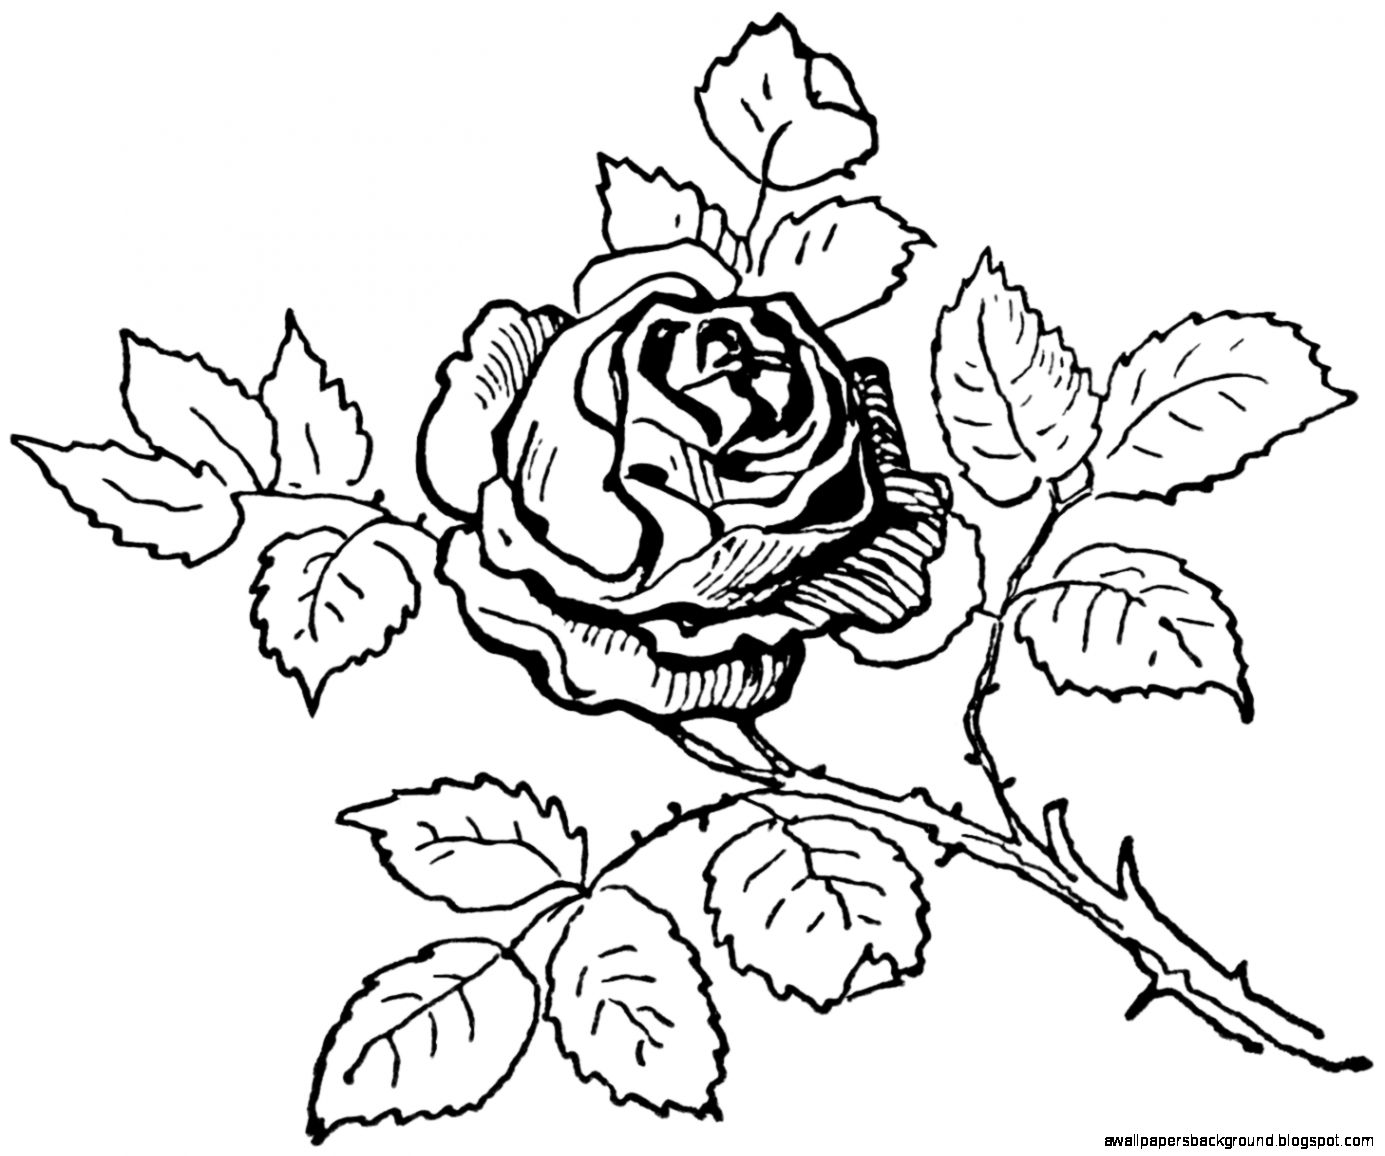 1385x1156 Rose Bouquet Clipart Black And White Amp Rose Bouquet Clip Art Black